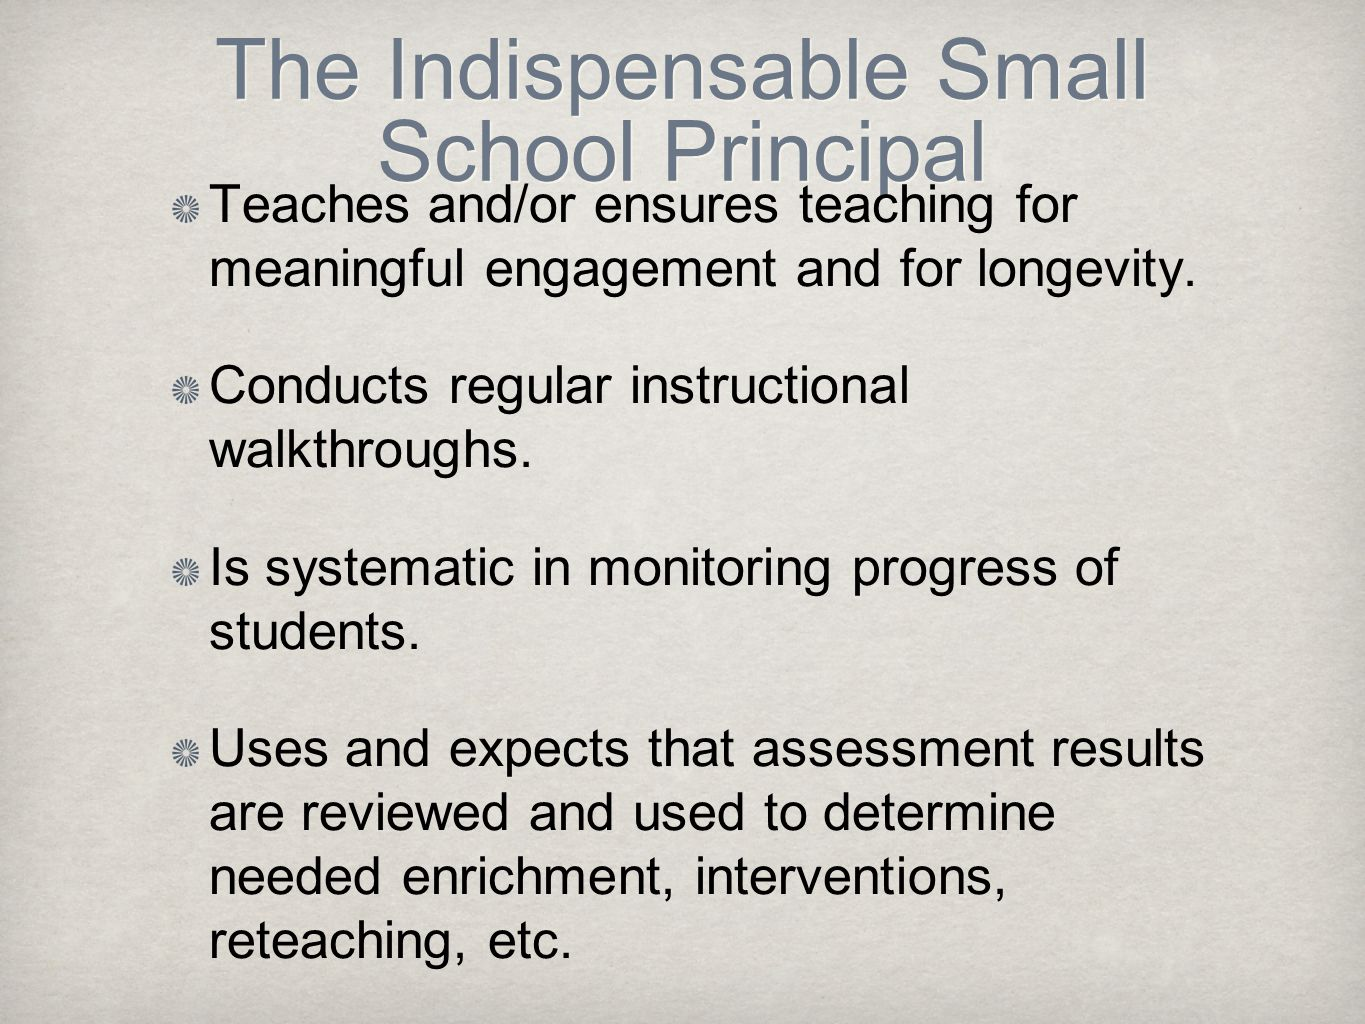 The Indispensable Small School Principal